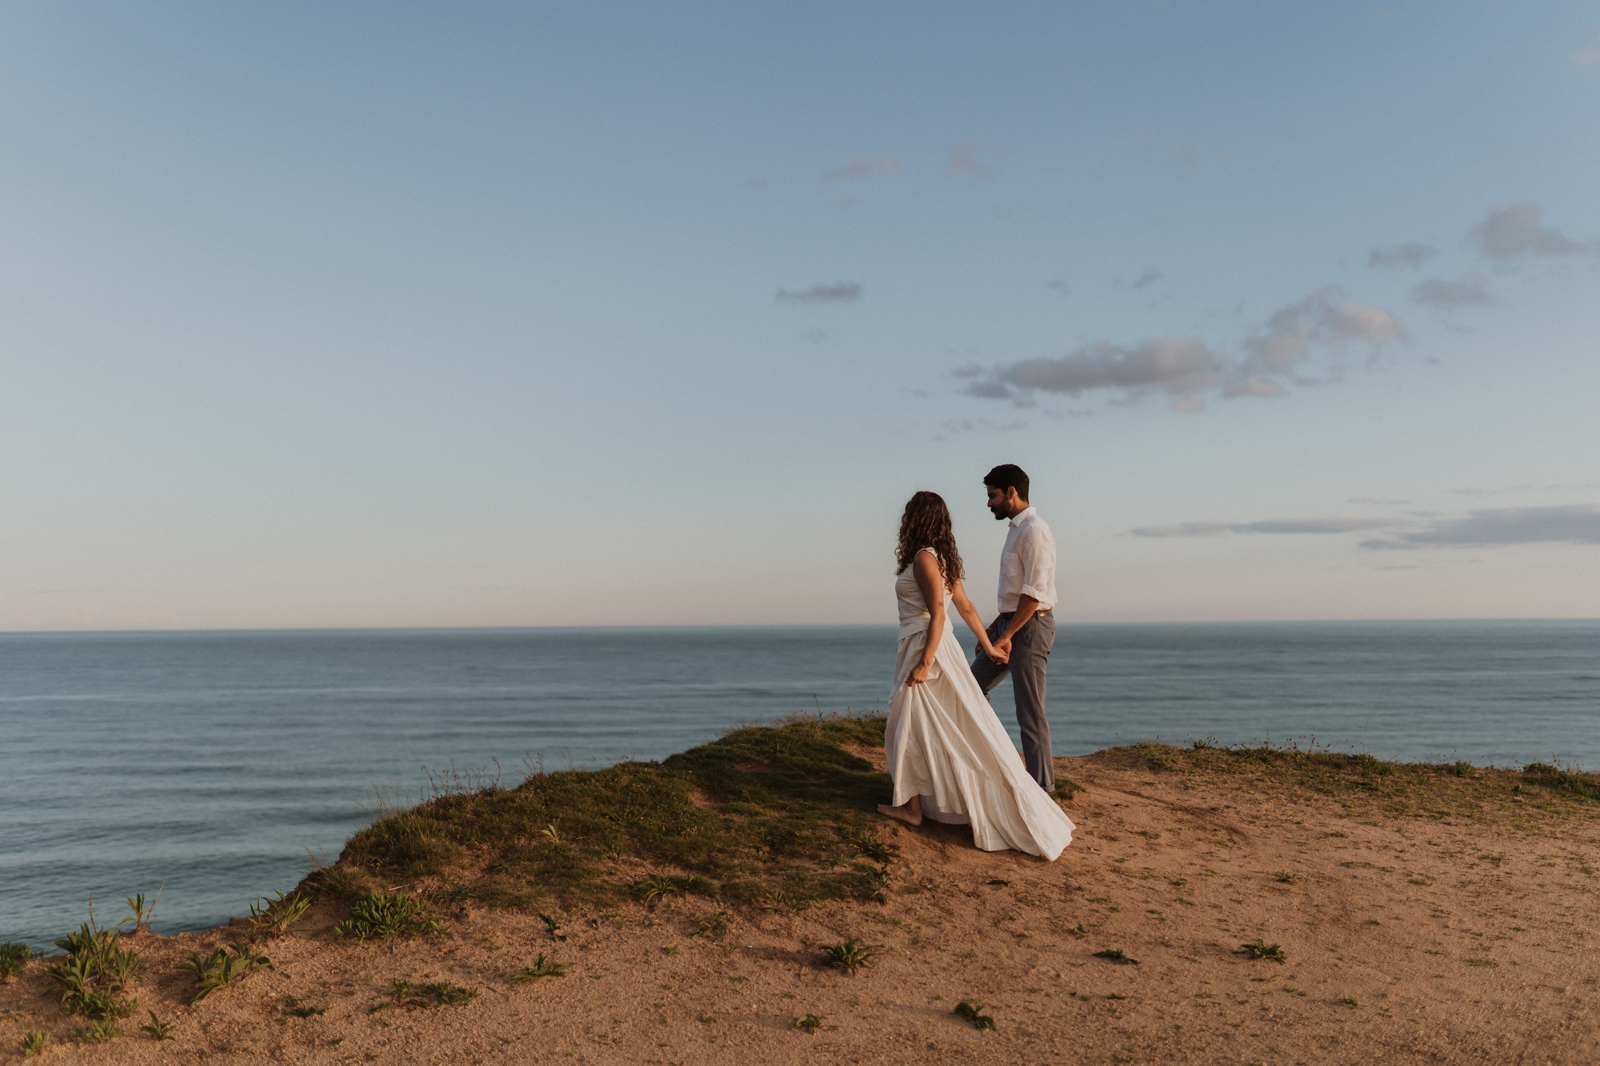 JJP_Nikki & Bud_Shadmoor_Montauk_NY_Cliff Engagement Session79.jpg_blog.jpg